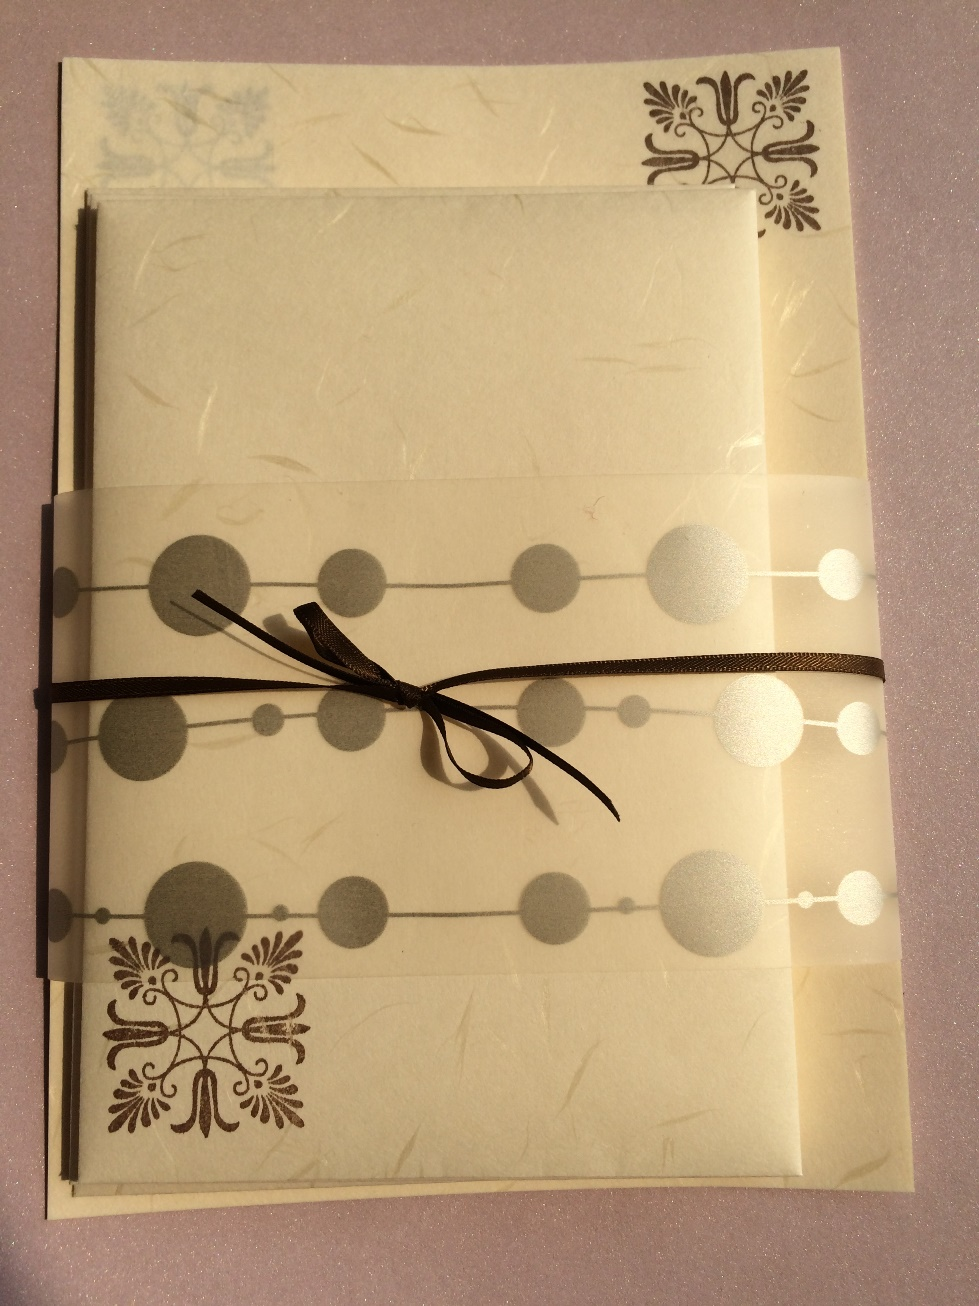 Конверт Other paper products brand sketchbook other paper products brand 230 230g 4k 8k 16k